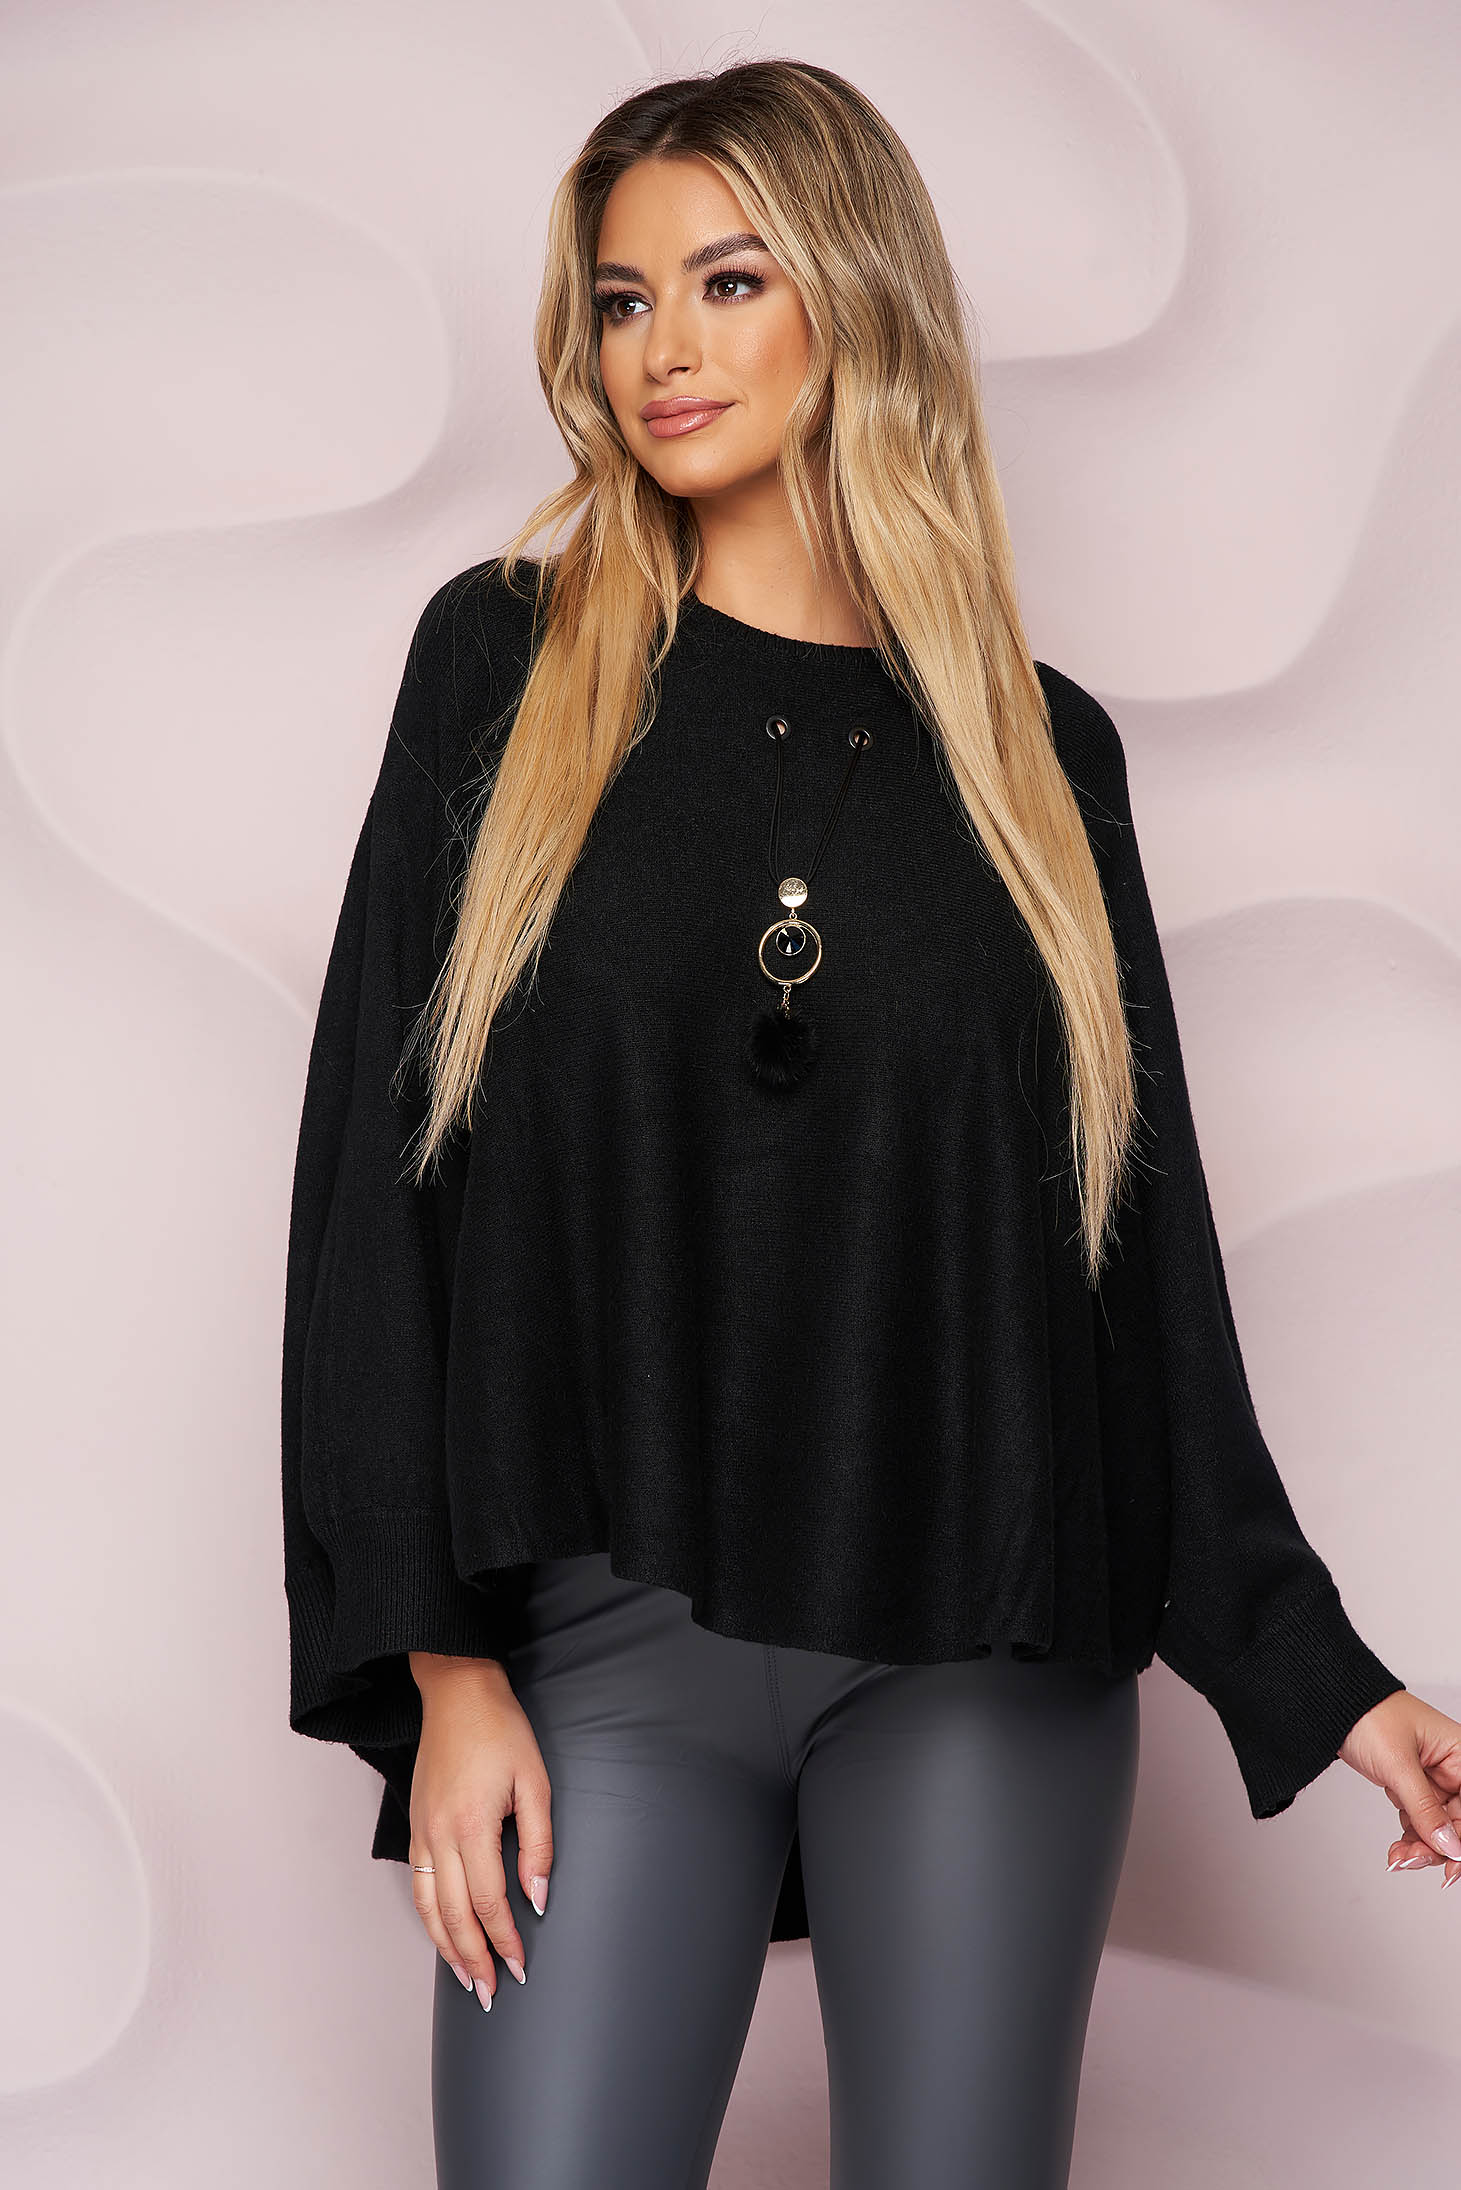 Black sweater loose fit knitted fabric from elastic fabric casual accesorised with necklace